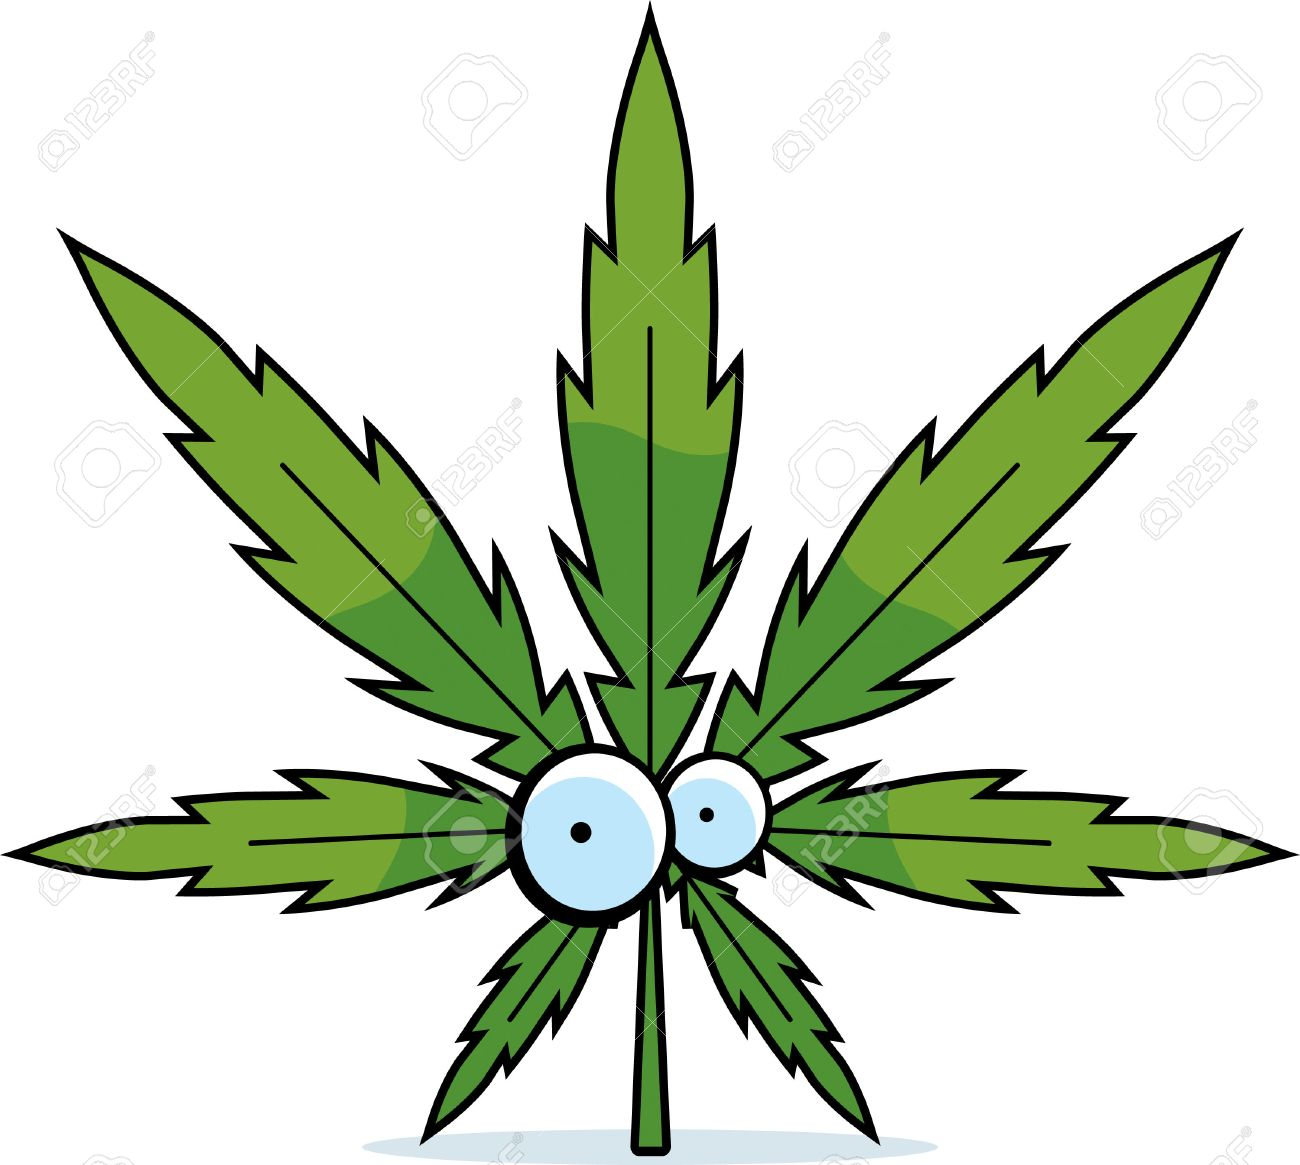 Weed Leaves Drawing at GetDrawings.com.